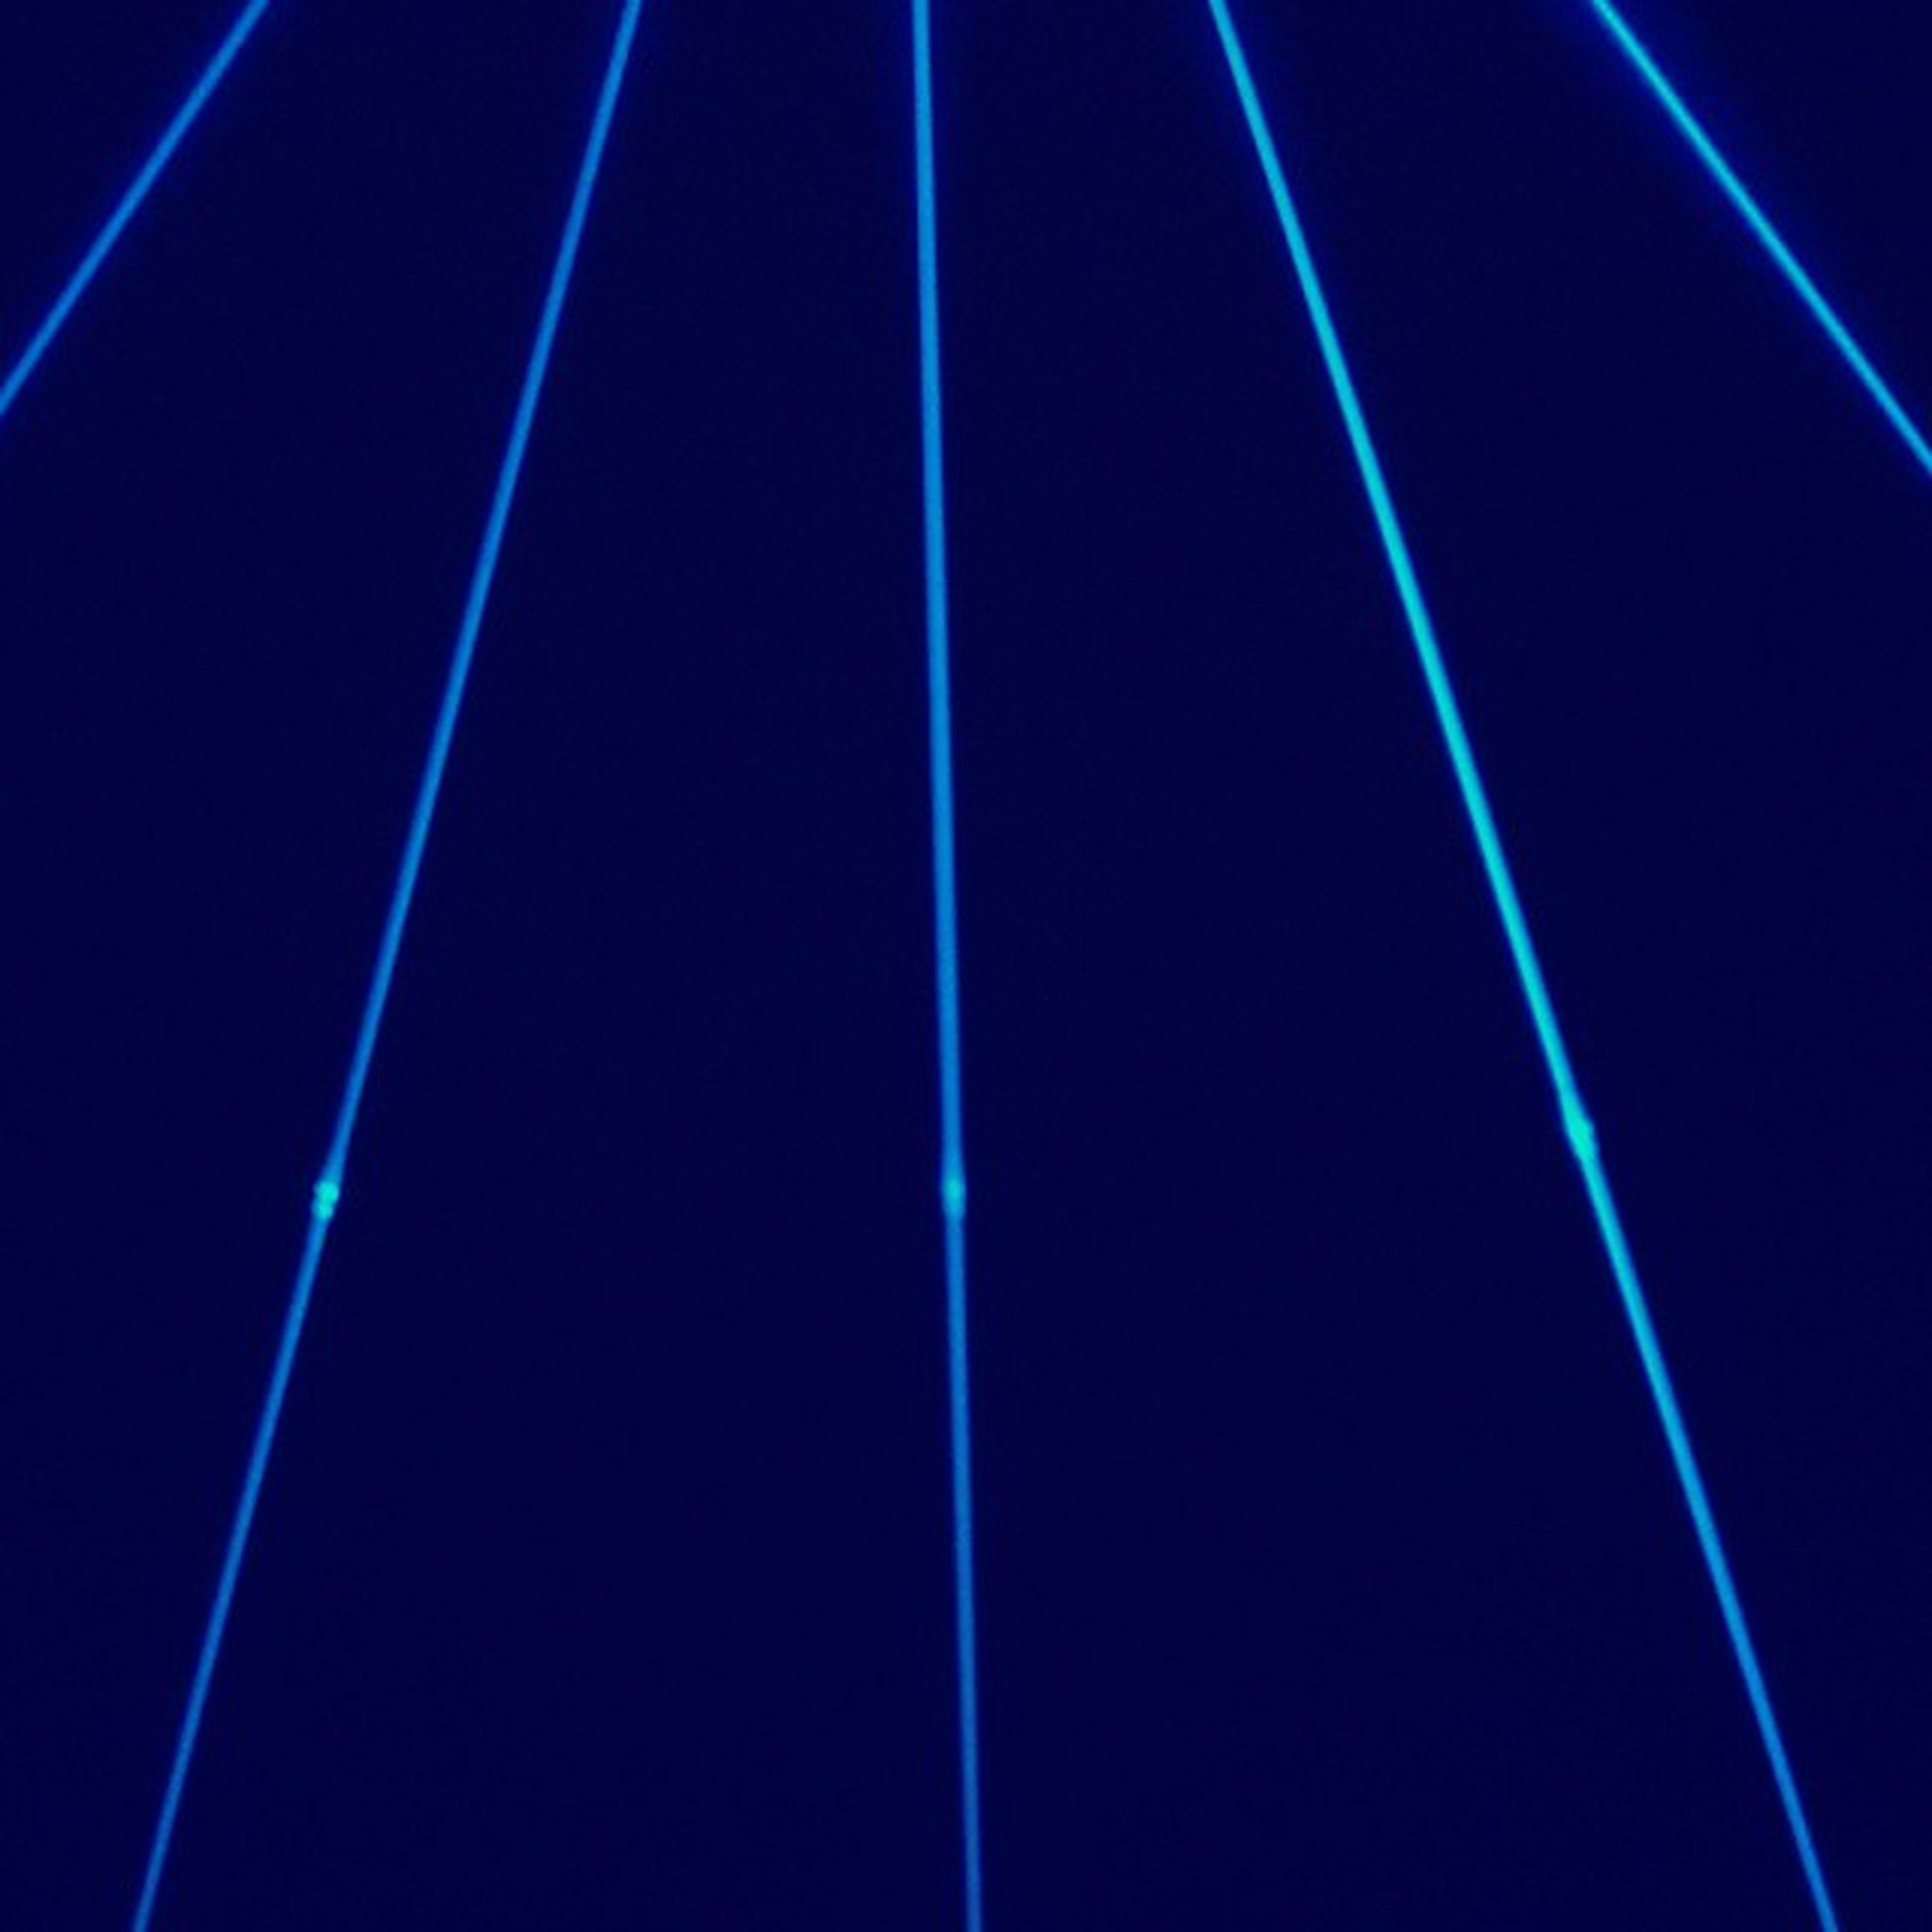 blue, low angle view, illuminated, night, lighting equipment, electricity, backgrounds, light - natural phenomenon, pattern, copy space, no people, outdoors, full frame, electric light, technology, abstract, street light, purple, sky, multi colored